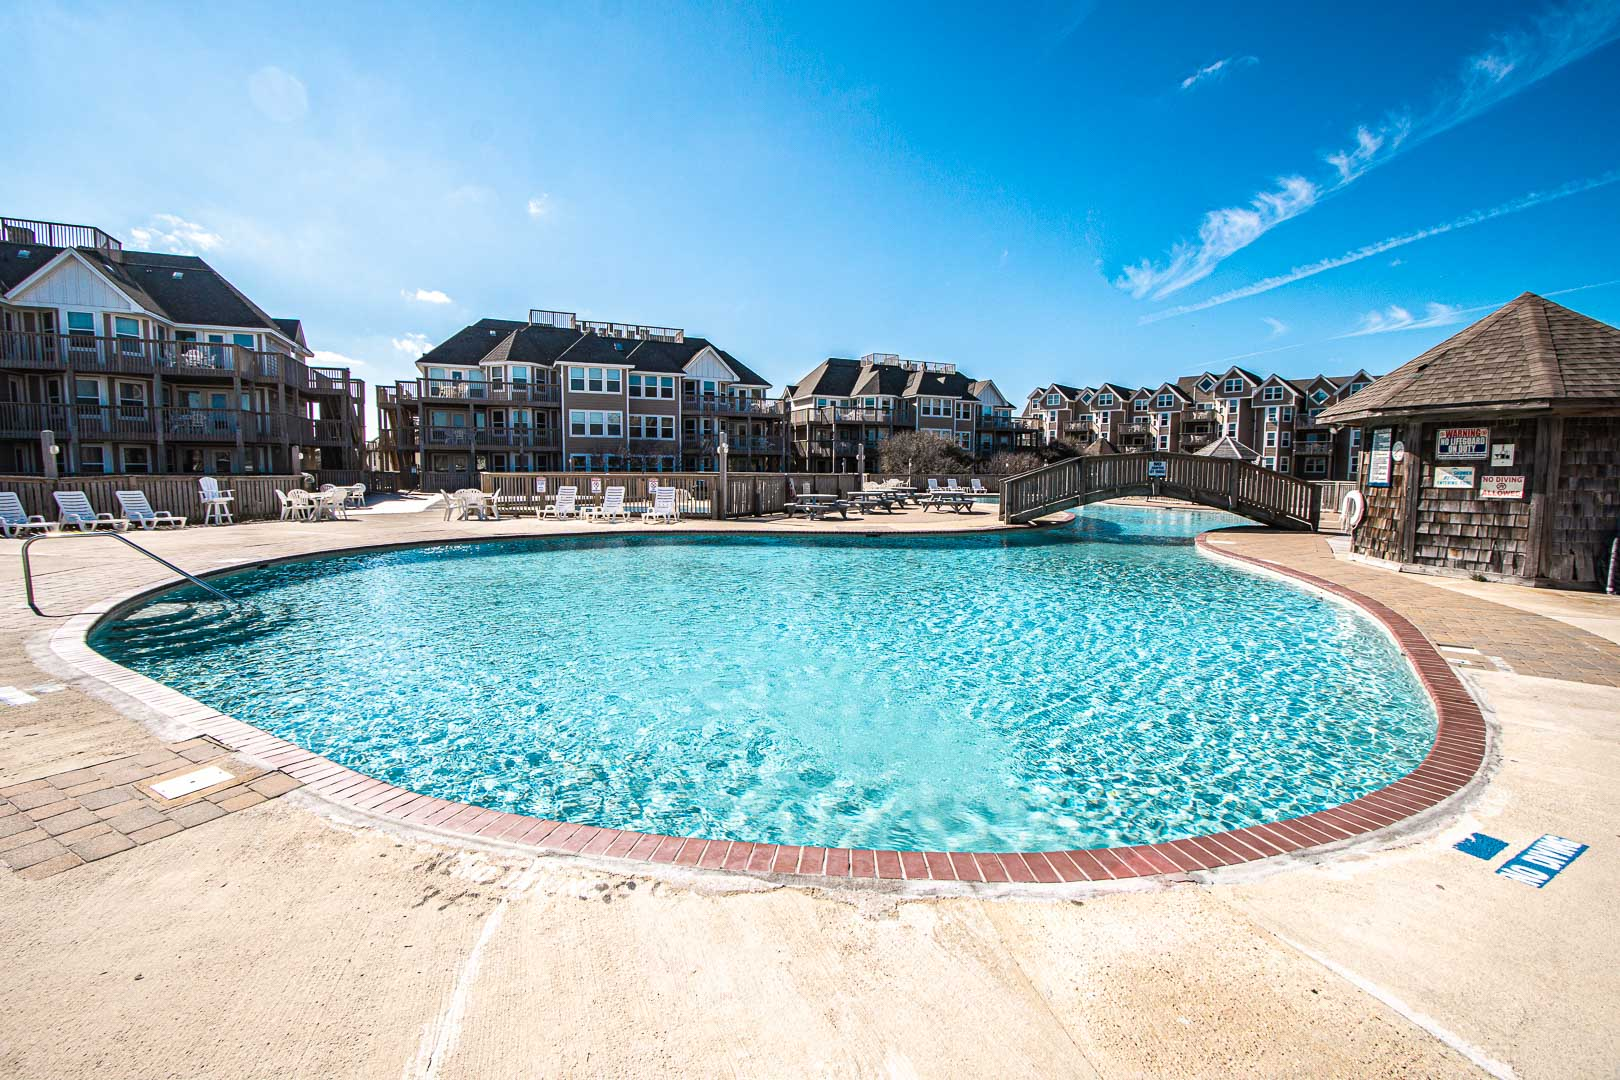 A picturesque outside swimming pool at VRI's Barrier Island Station in North Carolina.